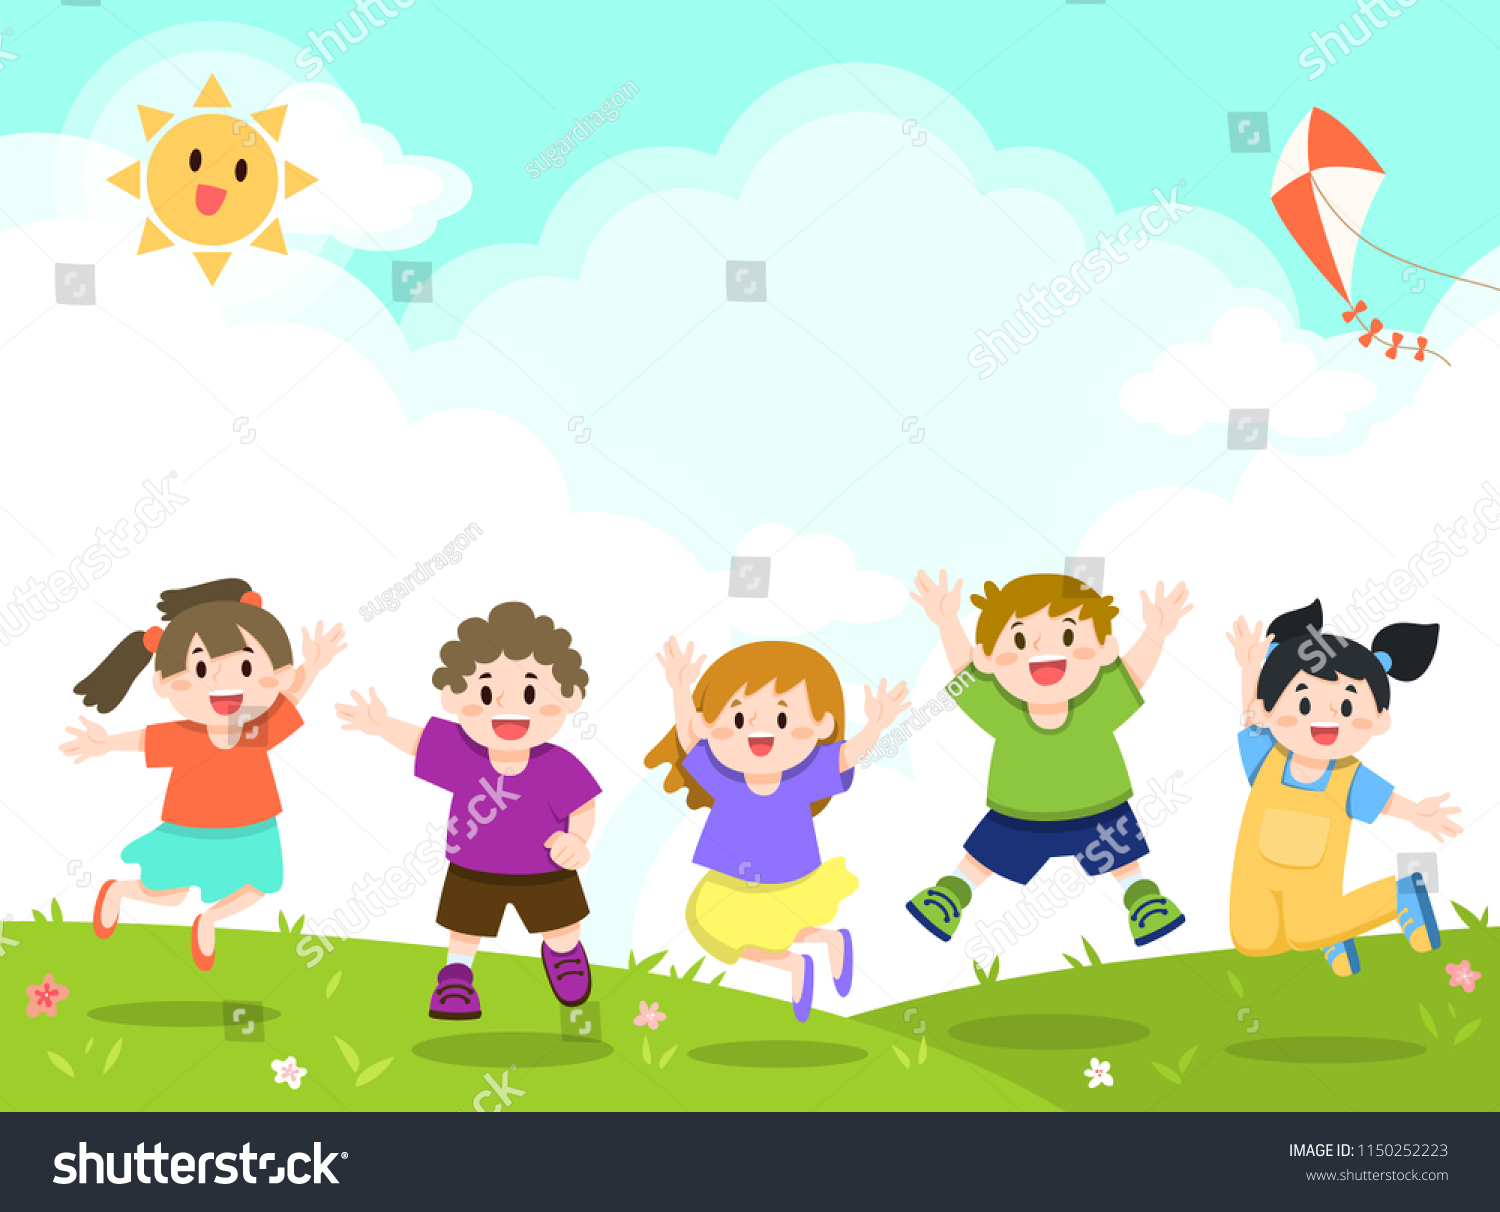 Playing kids. Illustration of playing kids in the garden.   CanStock